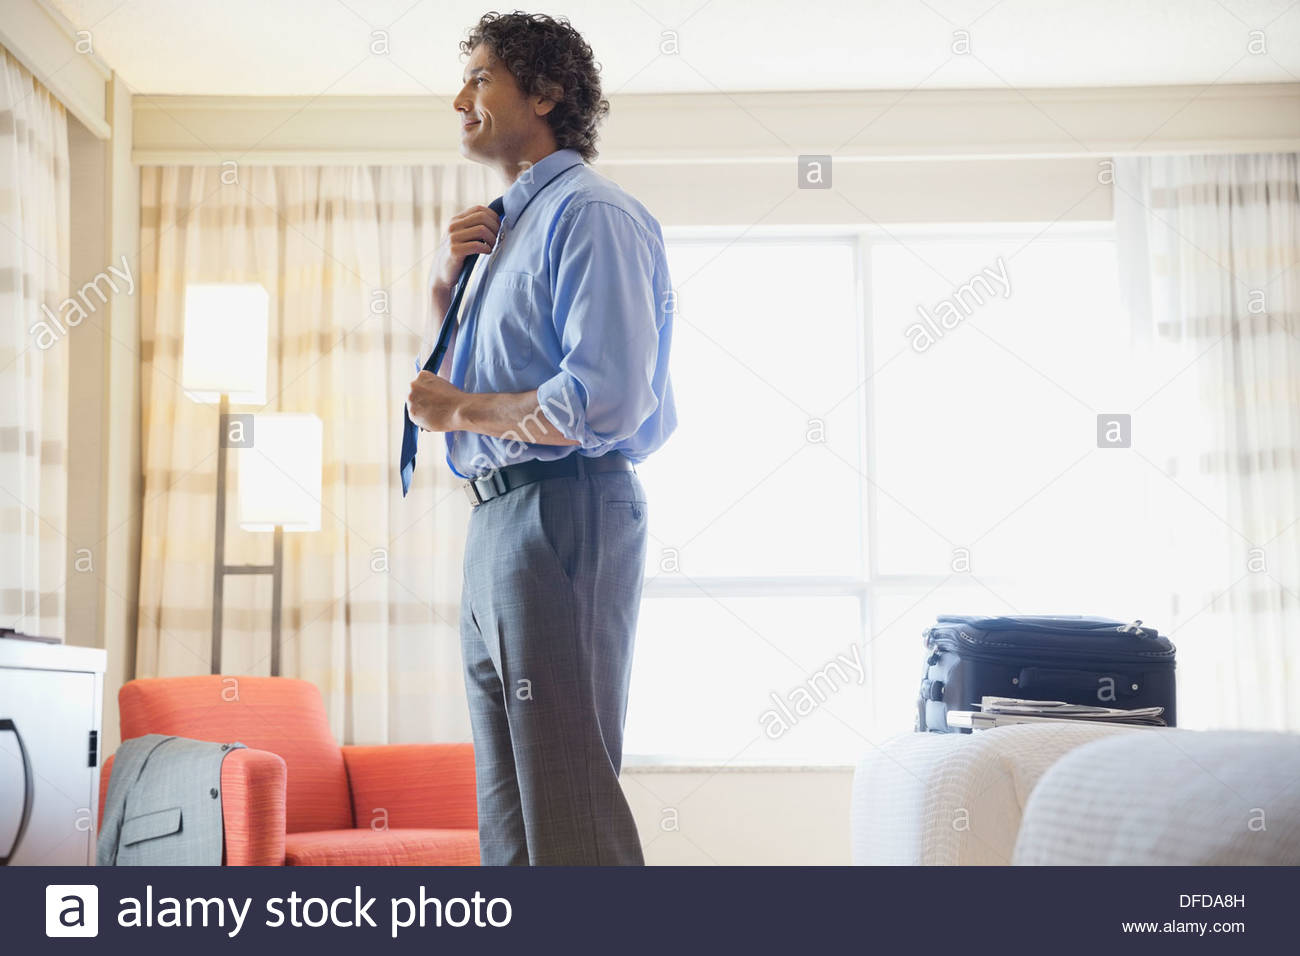 Businessman straightening tie in hotel room - Stock Image